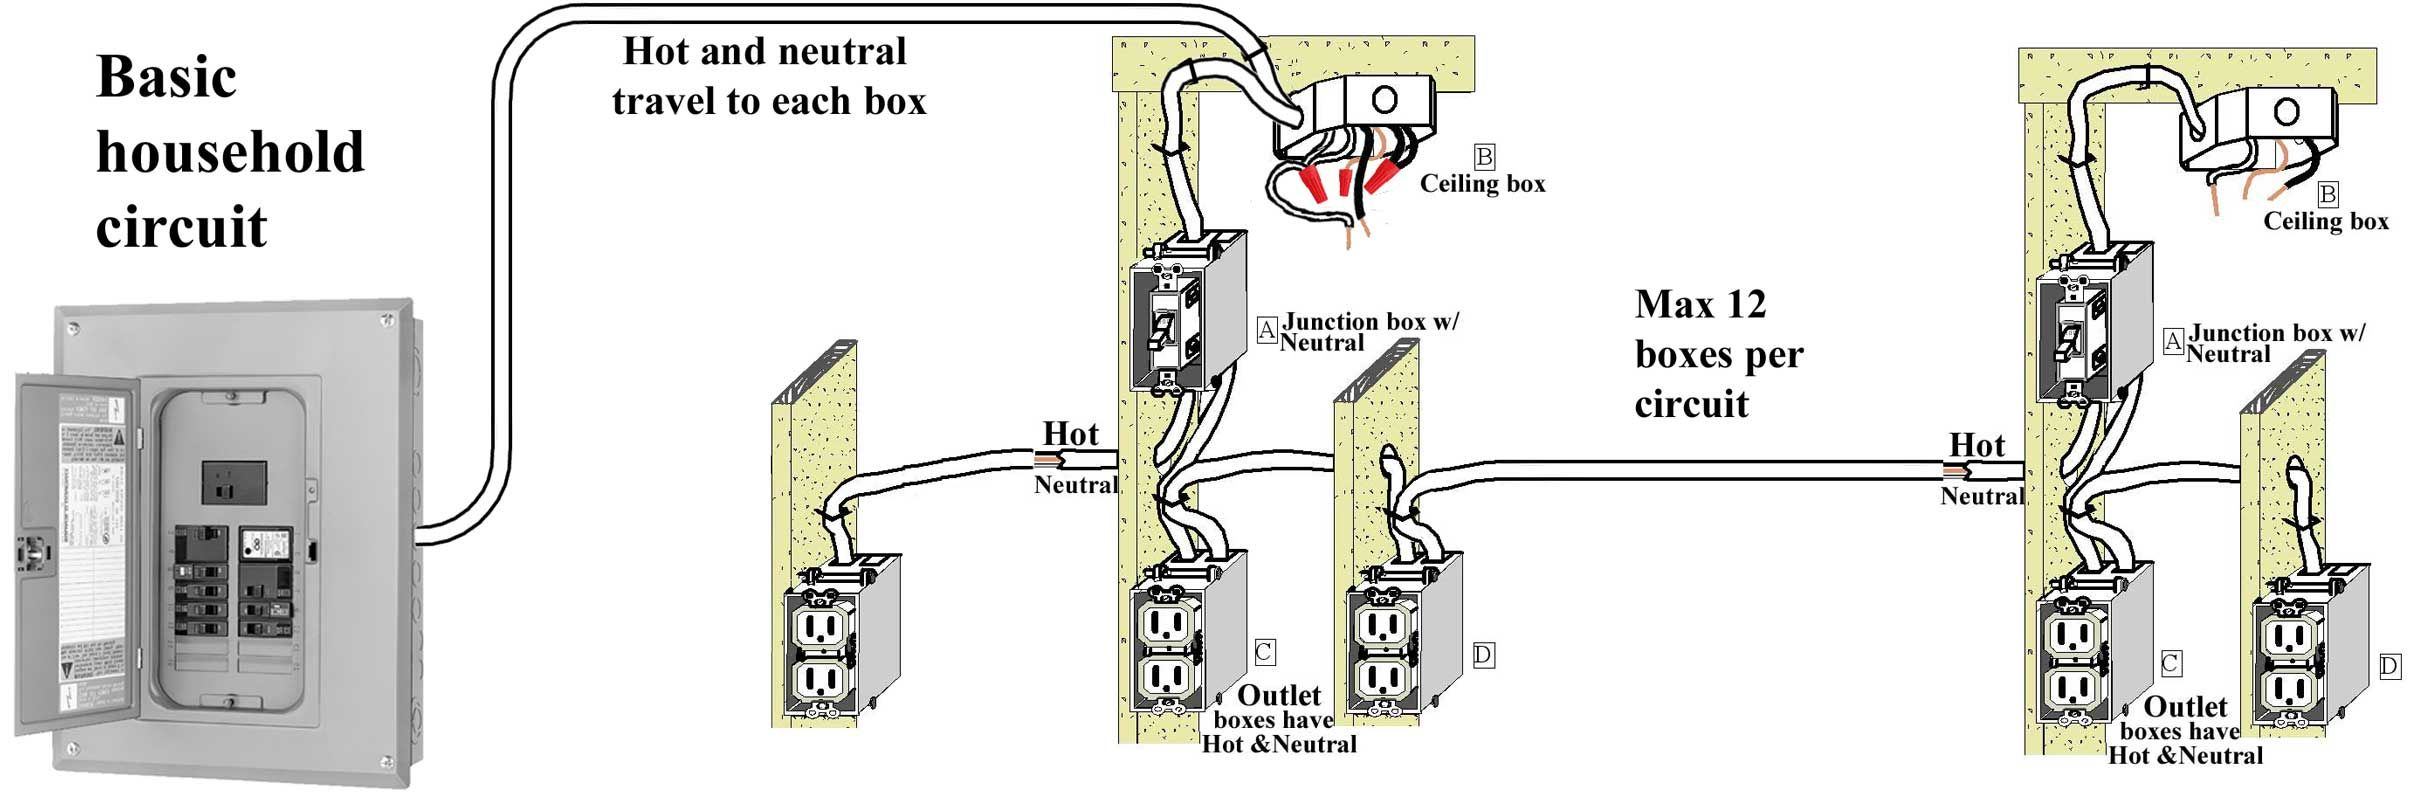 Basic Wiring Home Projects - Wiring Diagrams Hubs - Home Electrical Wiring Diagram